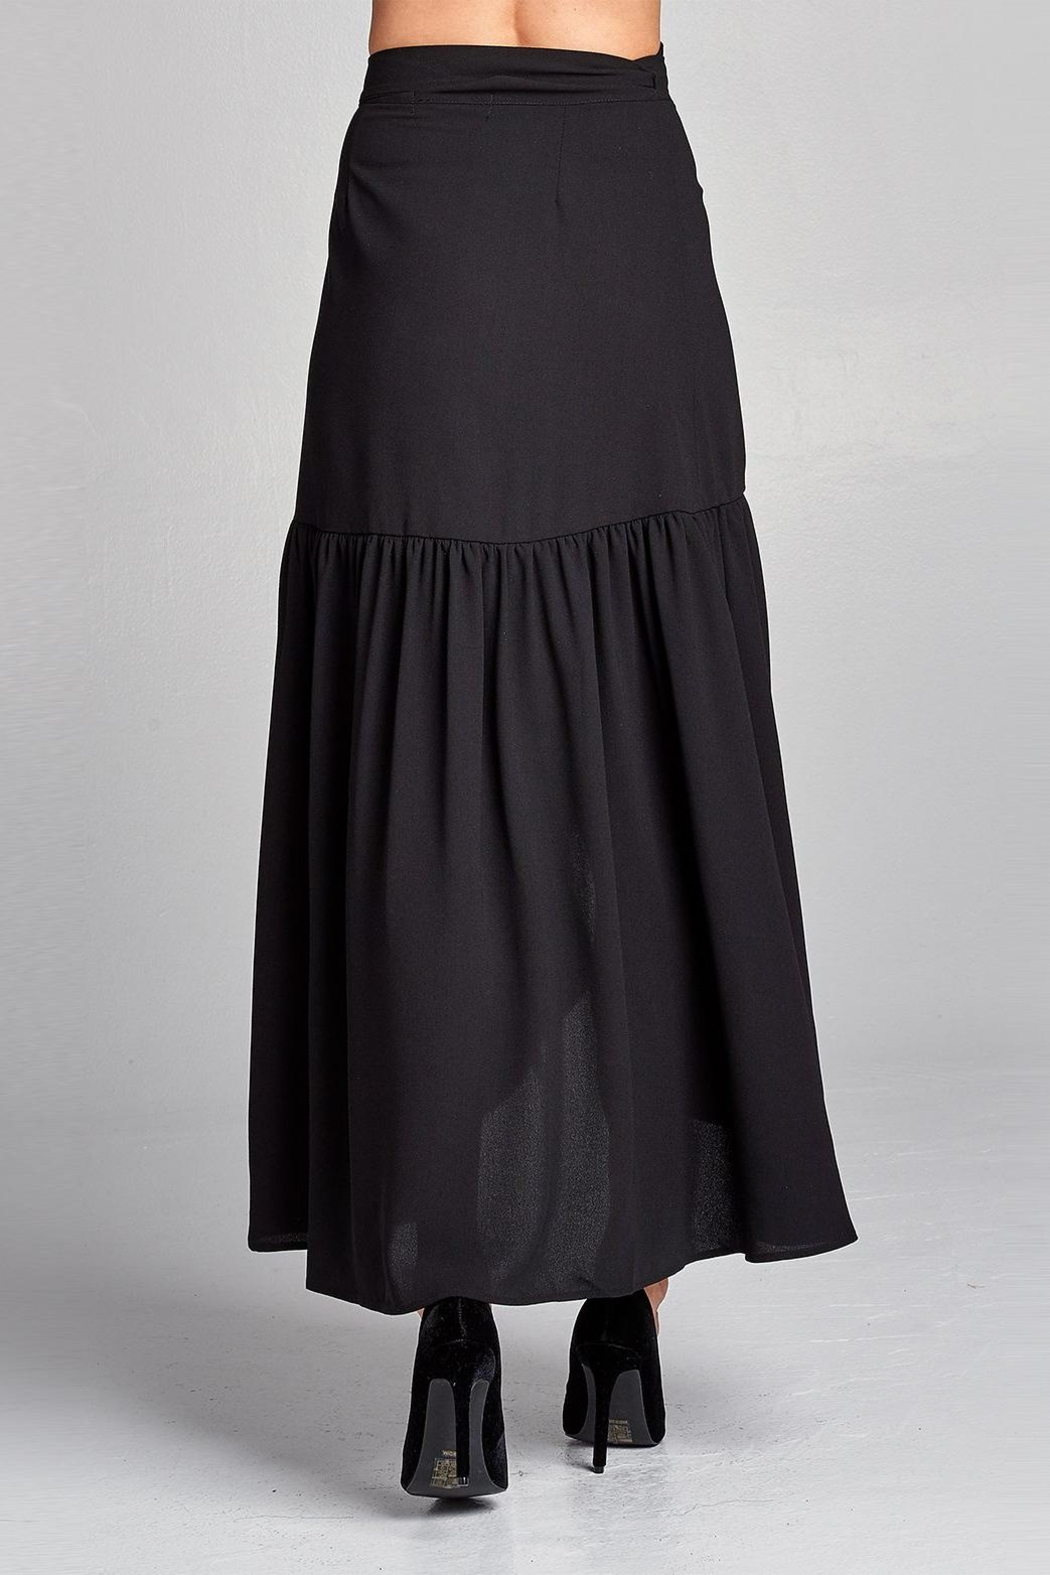 Love Kuza Frilled Wrap Skirt - Back Cropped Image